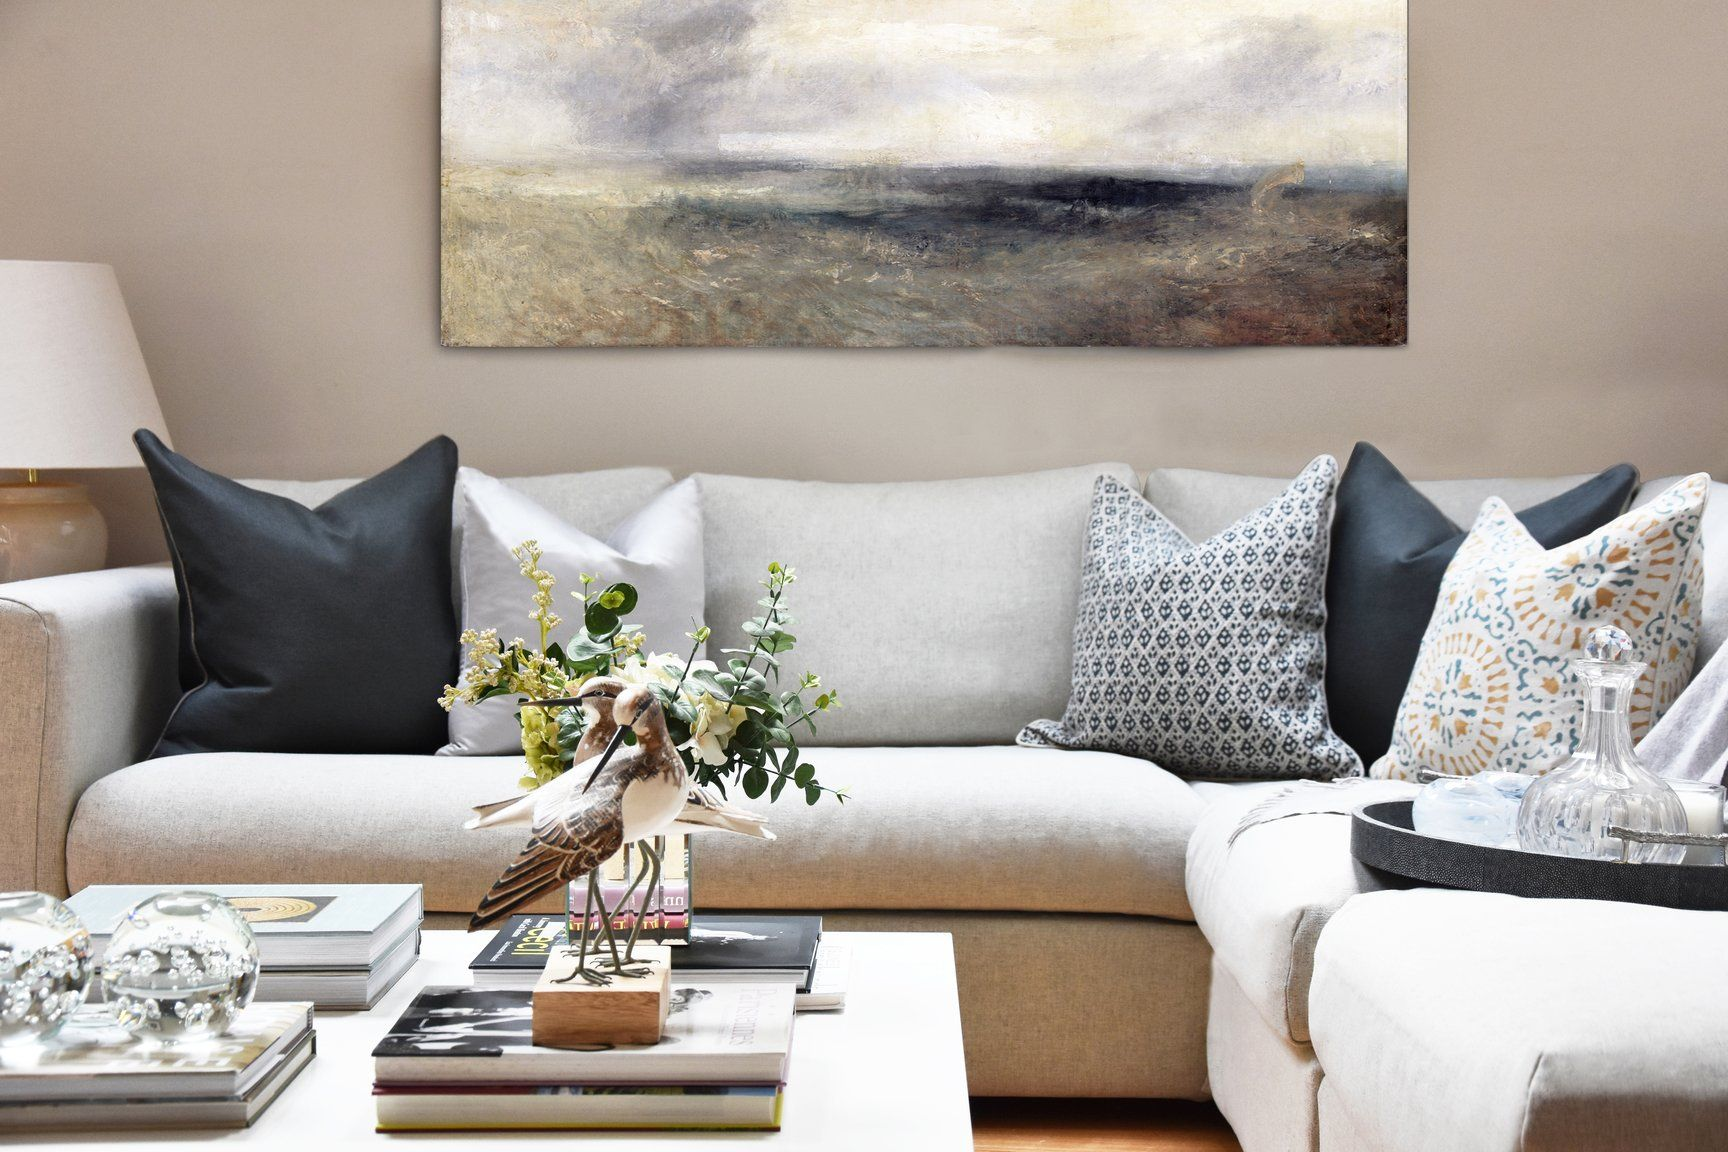 Interior Design Company Based In Fulham London We Specialise In